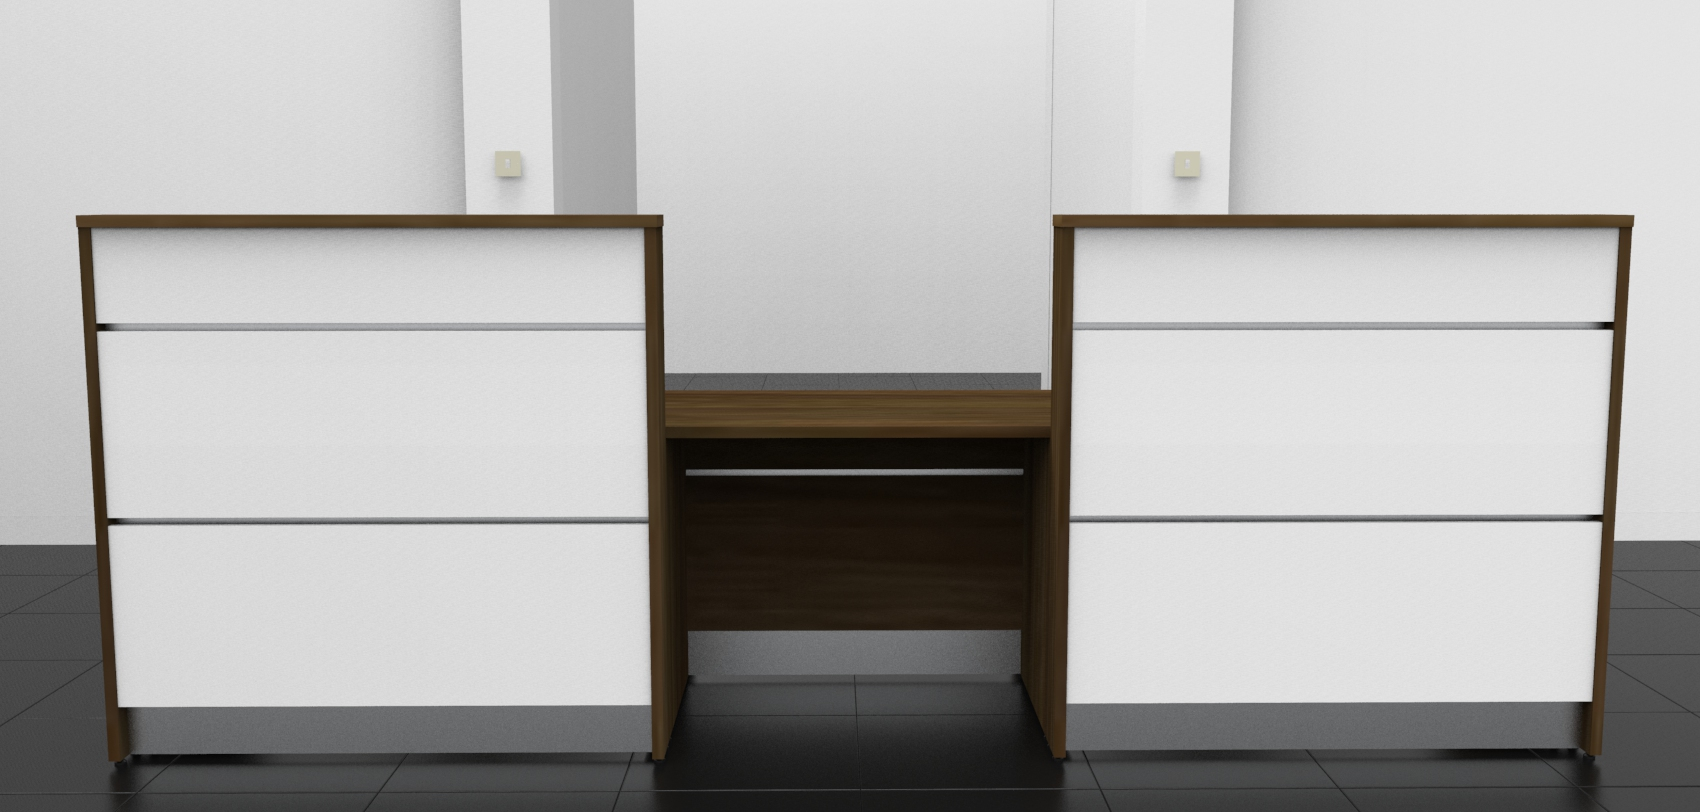 Image 2U - Tall Walnut and Gloss White DDA Union Reception desk front view